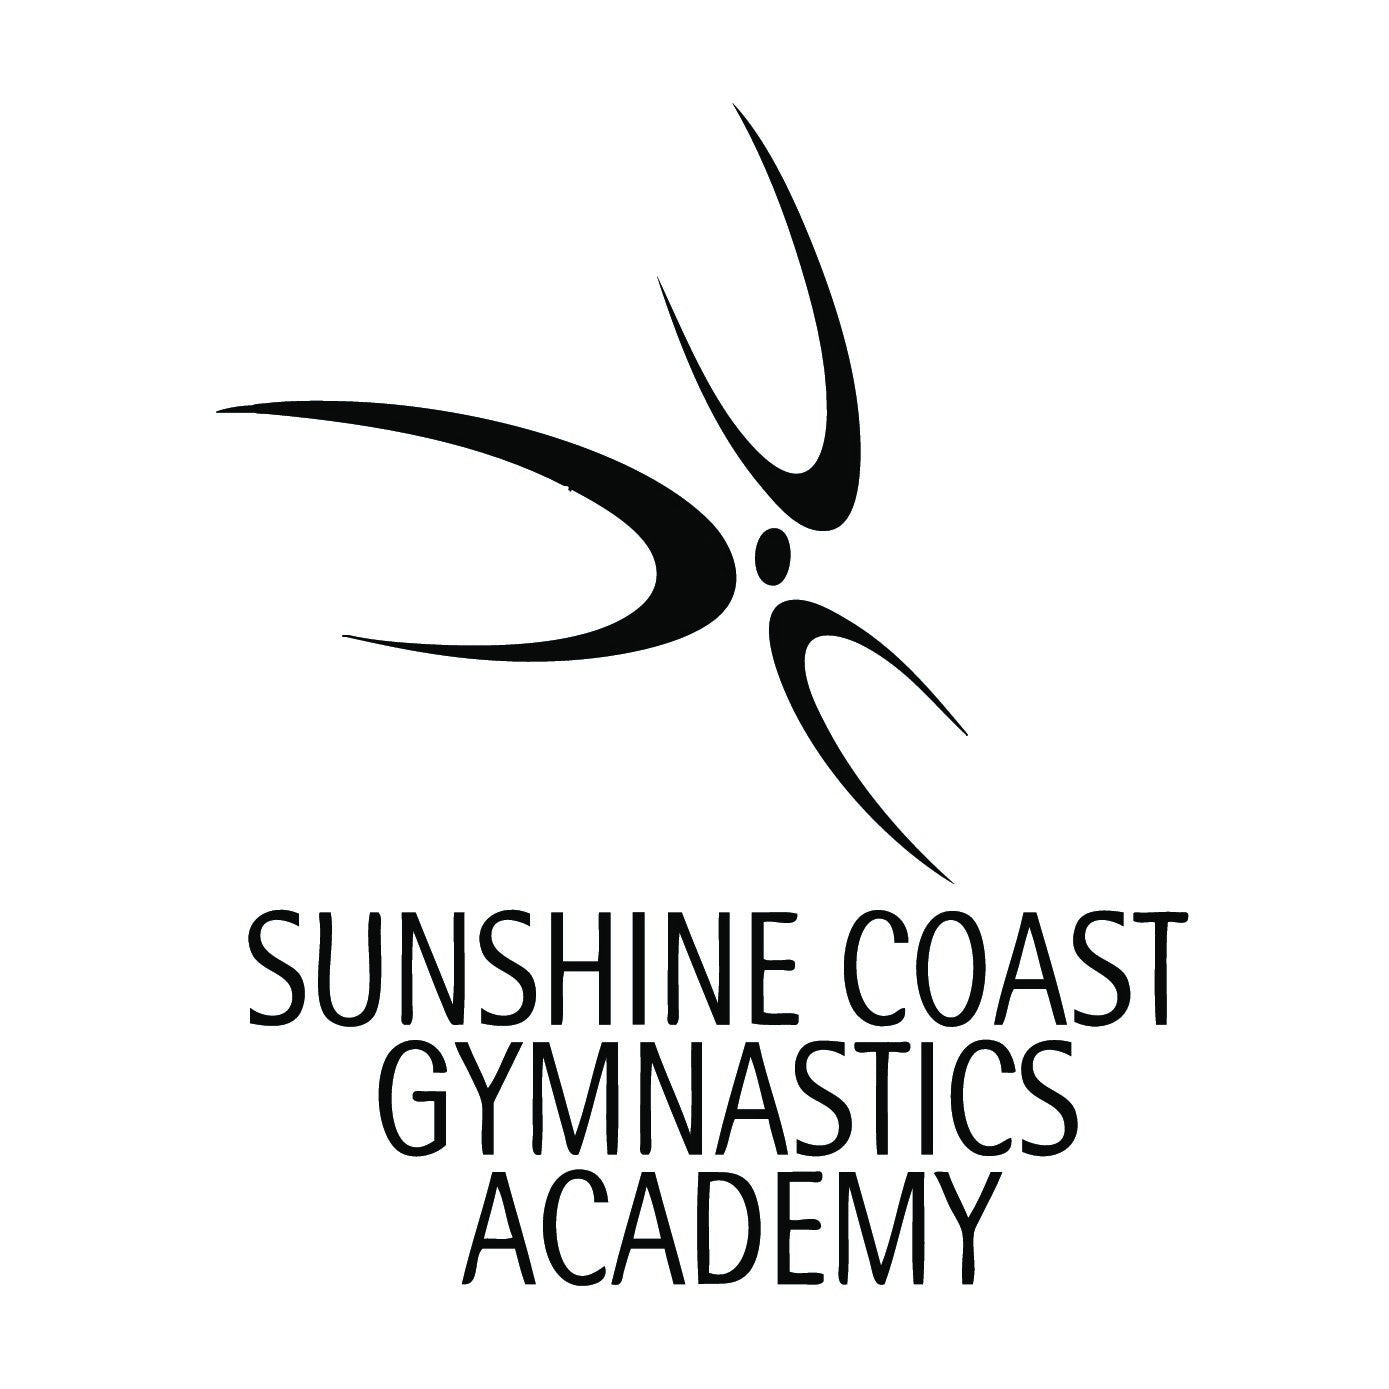 Sunshine Coast Gymnastics Academy